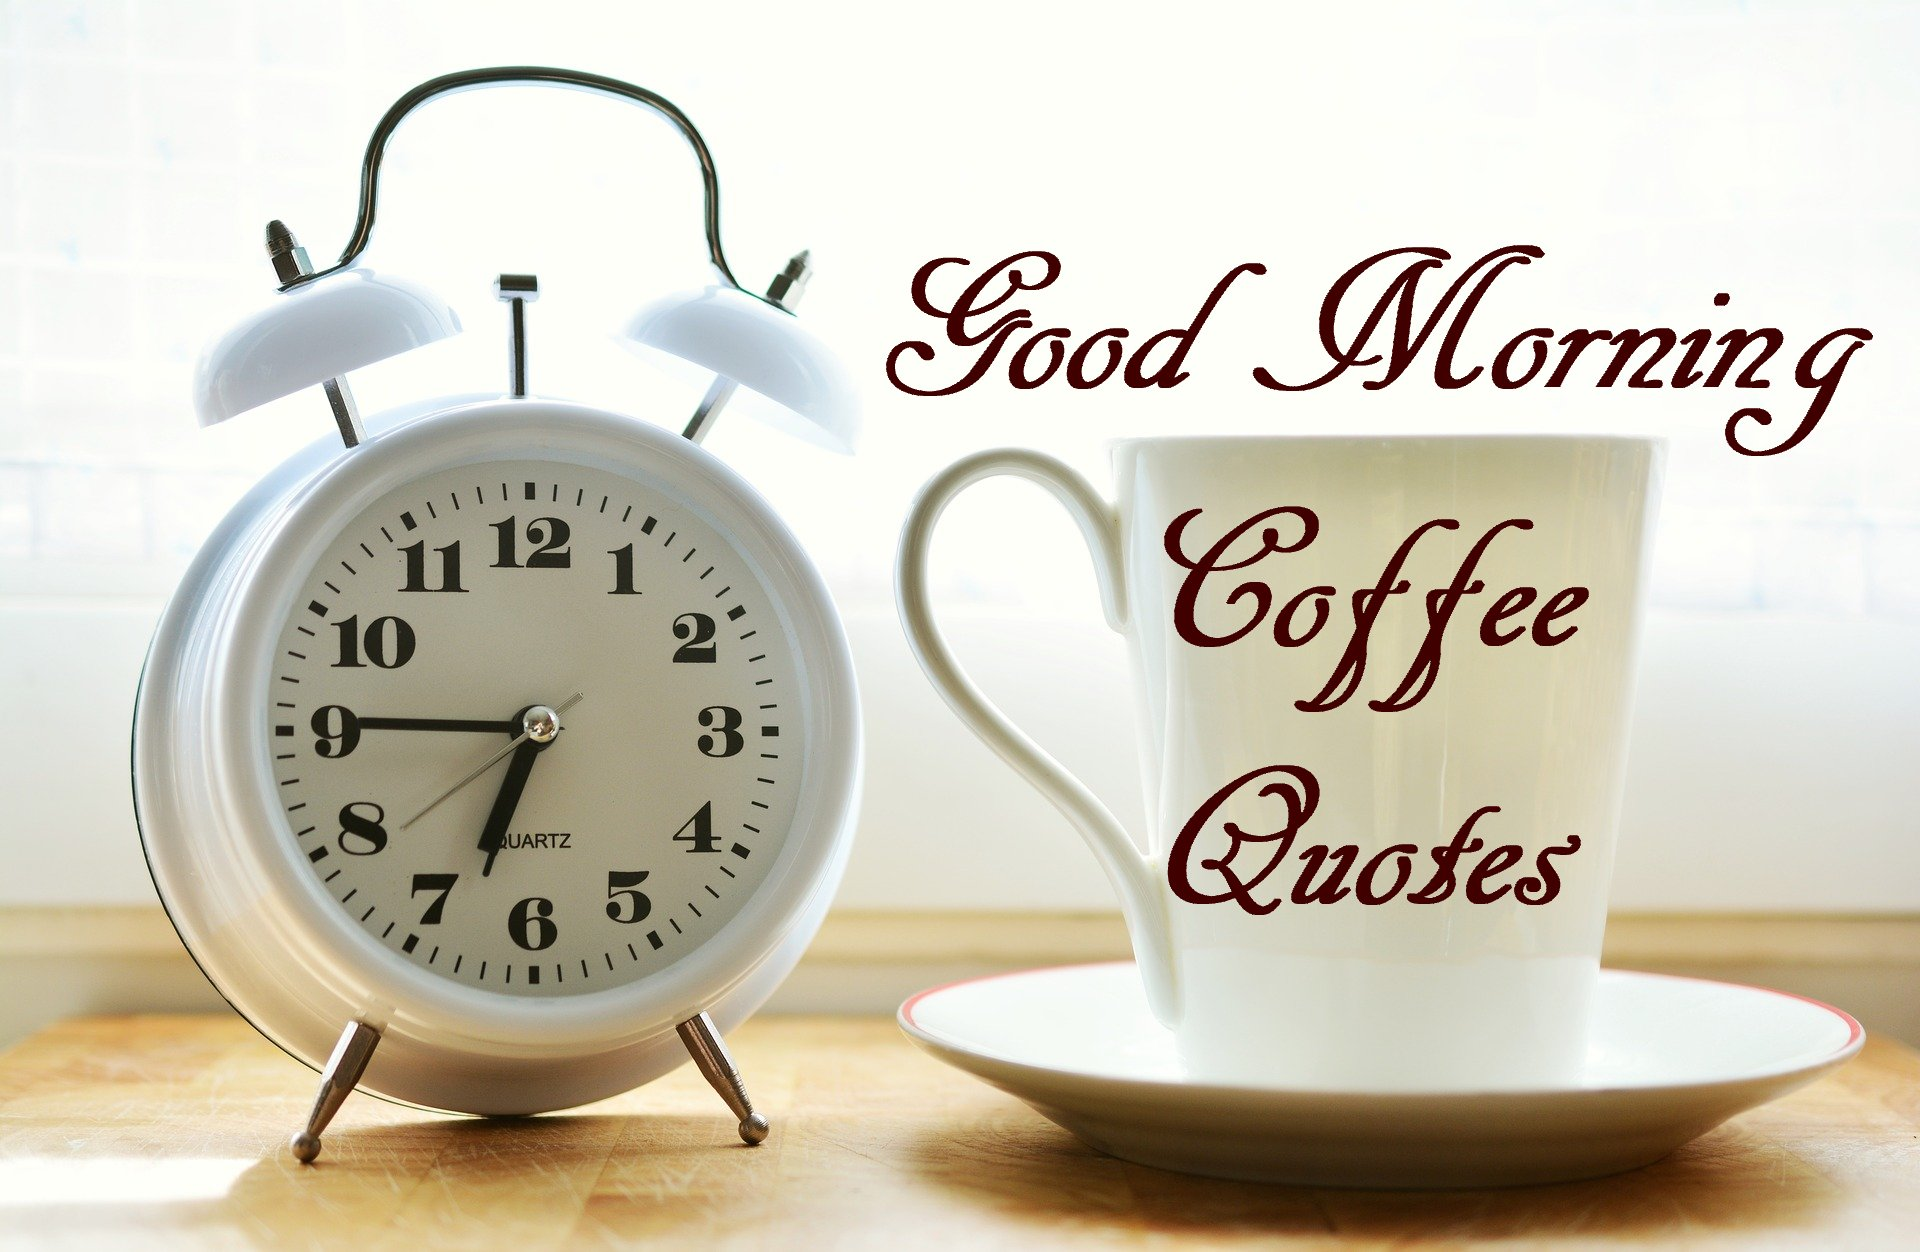 Good Morning Coffee Quotes Coffeenwine